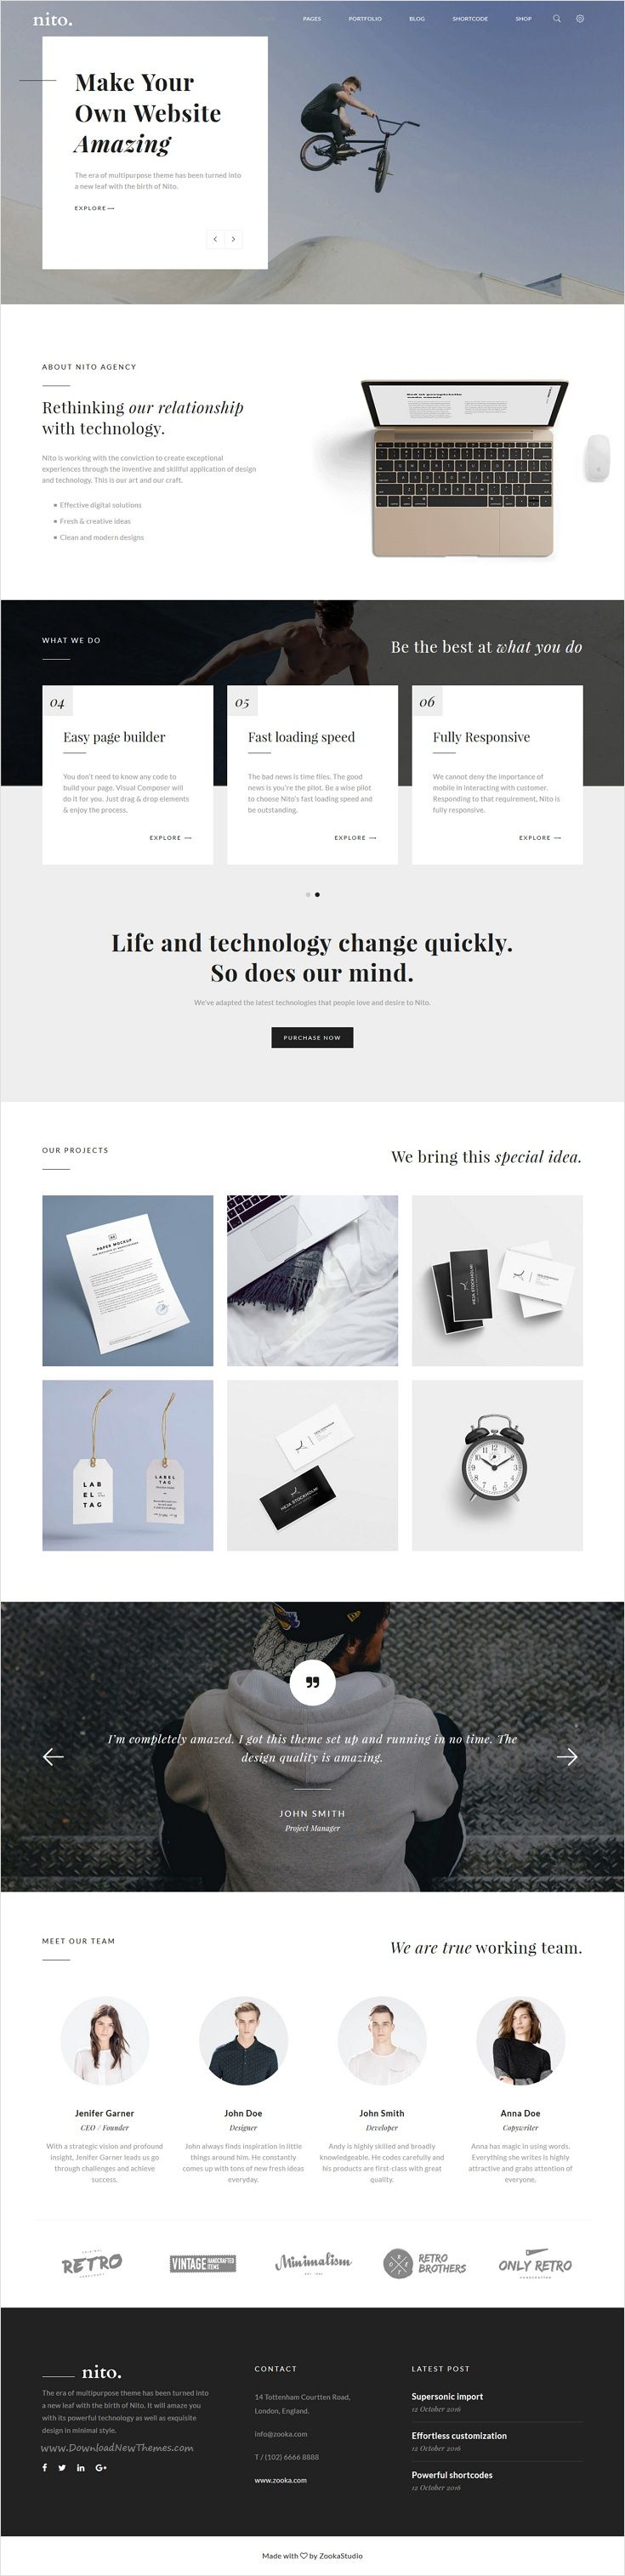 Nito is a clean and minimal multipurpose #WordPress theme for stunning #corporate #website with 21+ unique homepage layouts download now➩ https://themeforest.net/item/nito-a-clean-minimal-multipurpose-wordpress-theme/17897172?ref=Datasata